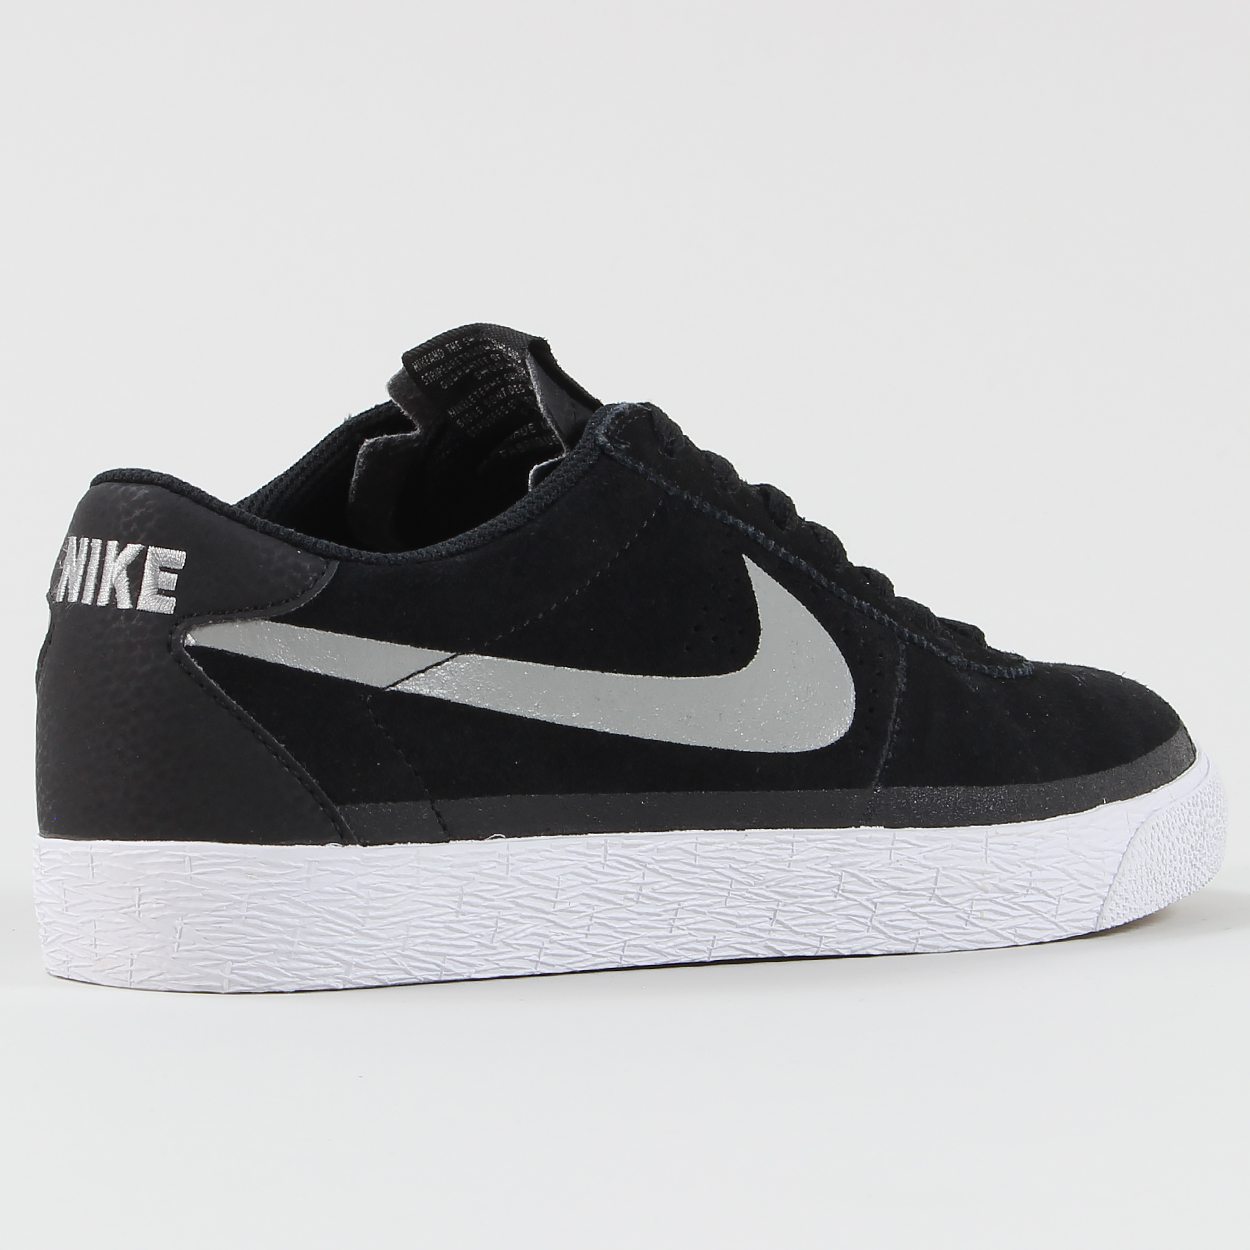 huge discount 46575 c3d2c The Bruin Premium from Nike SB comin' at ya with high quality suede uppers,  a Zoom Air insole and a padded tongue for added comfort.